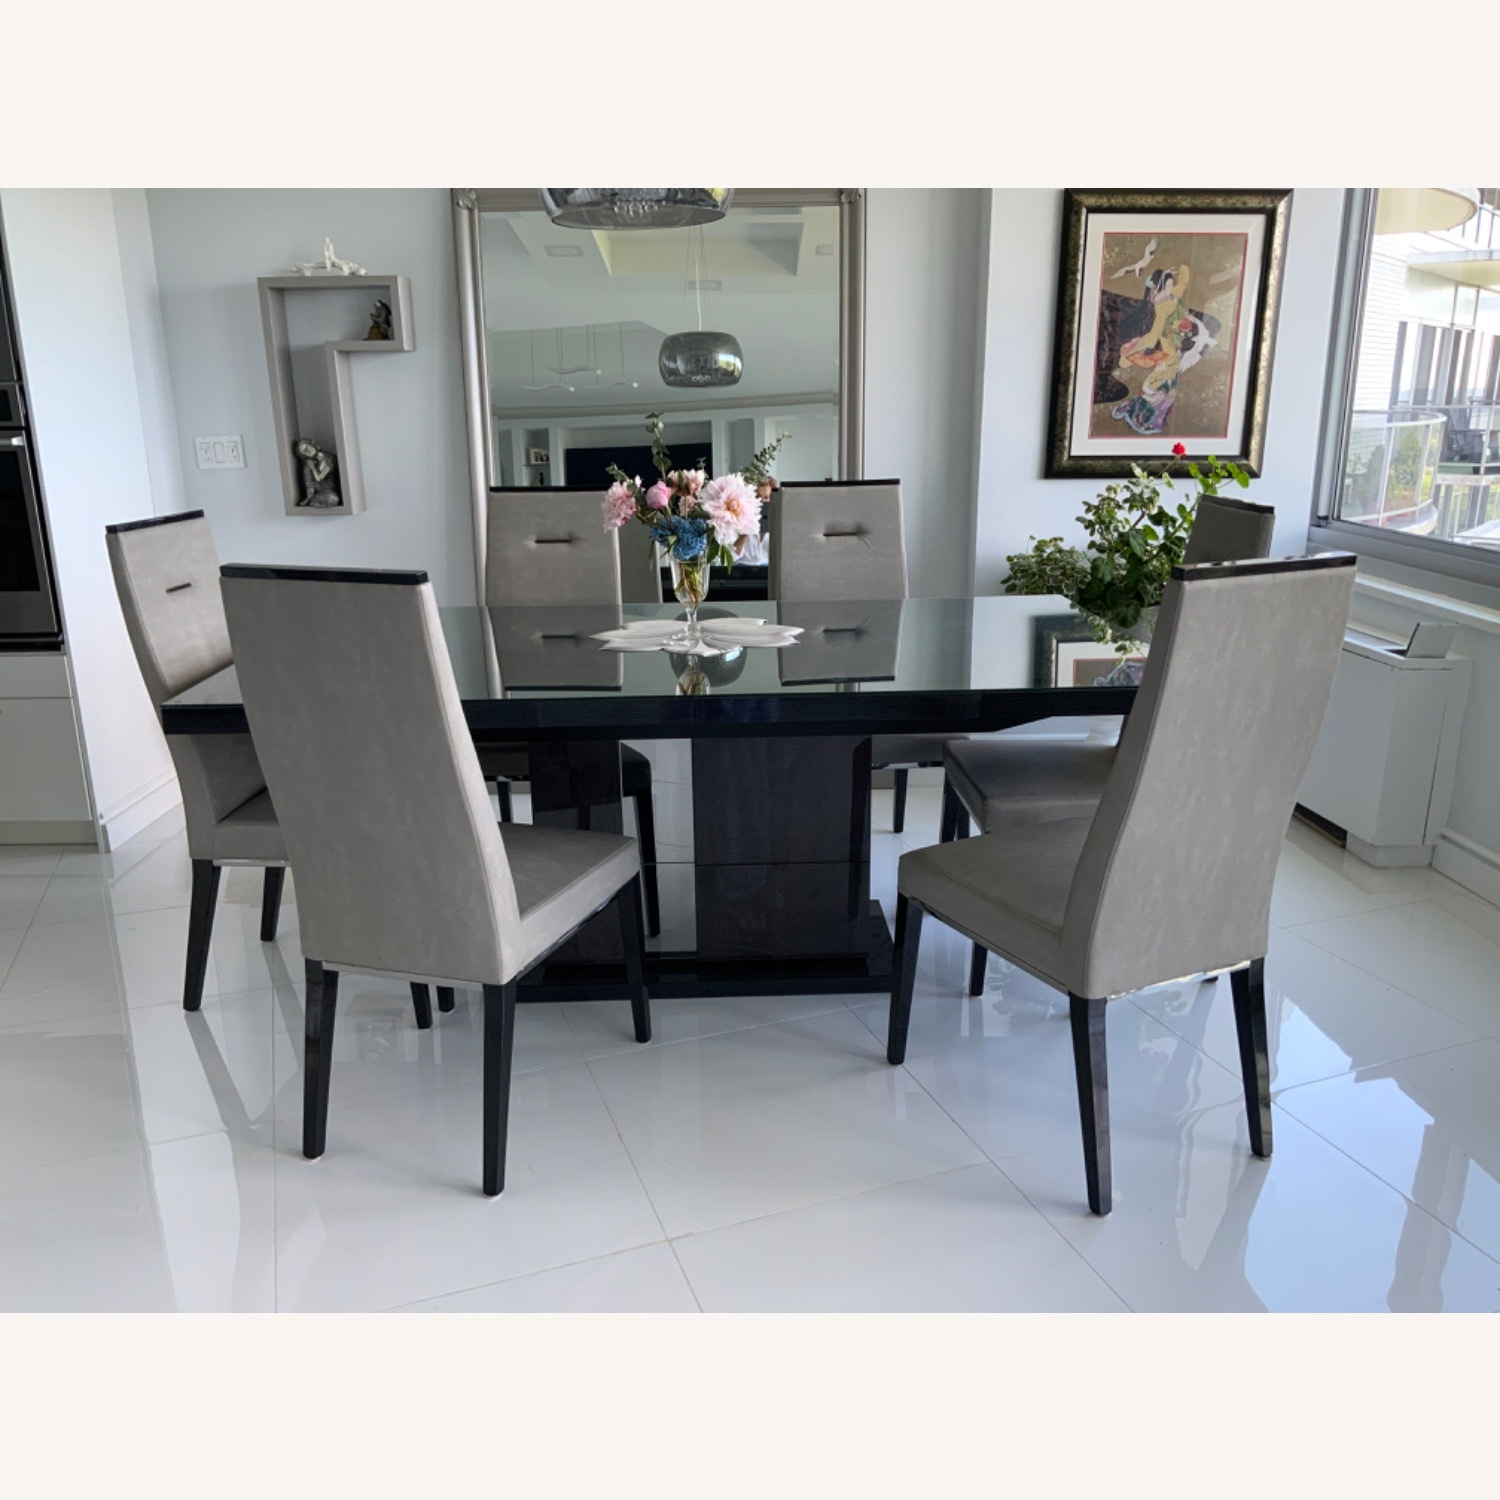 Dining Room Set - 6 leather chairs - image-1